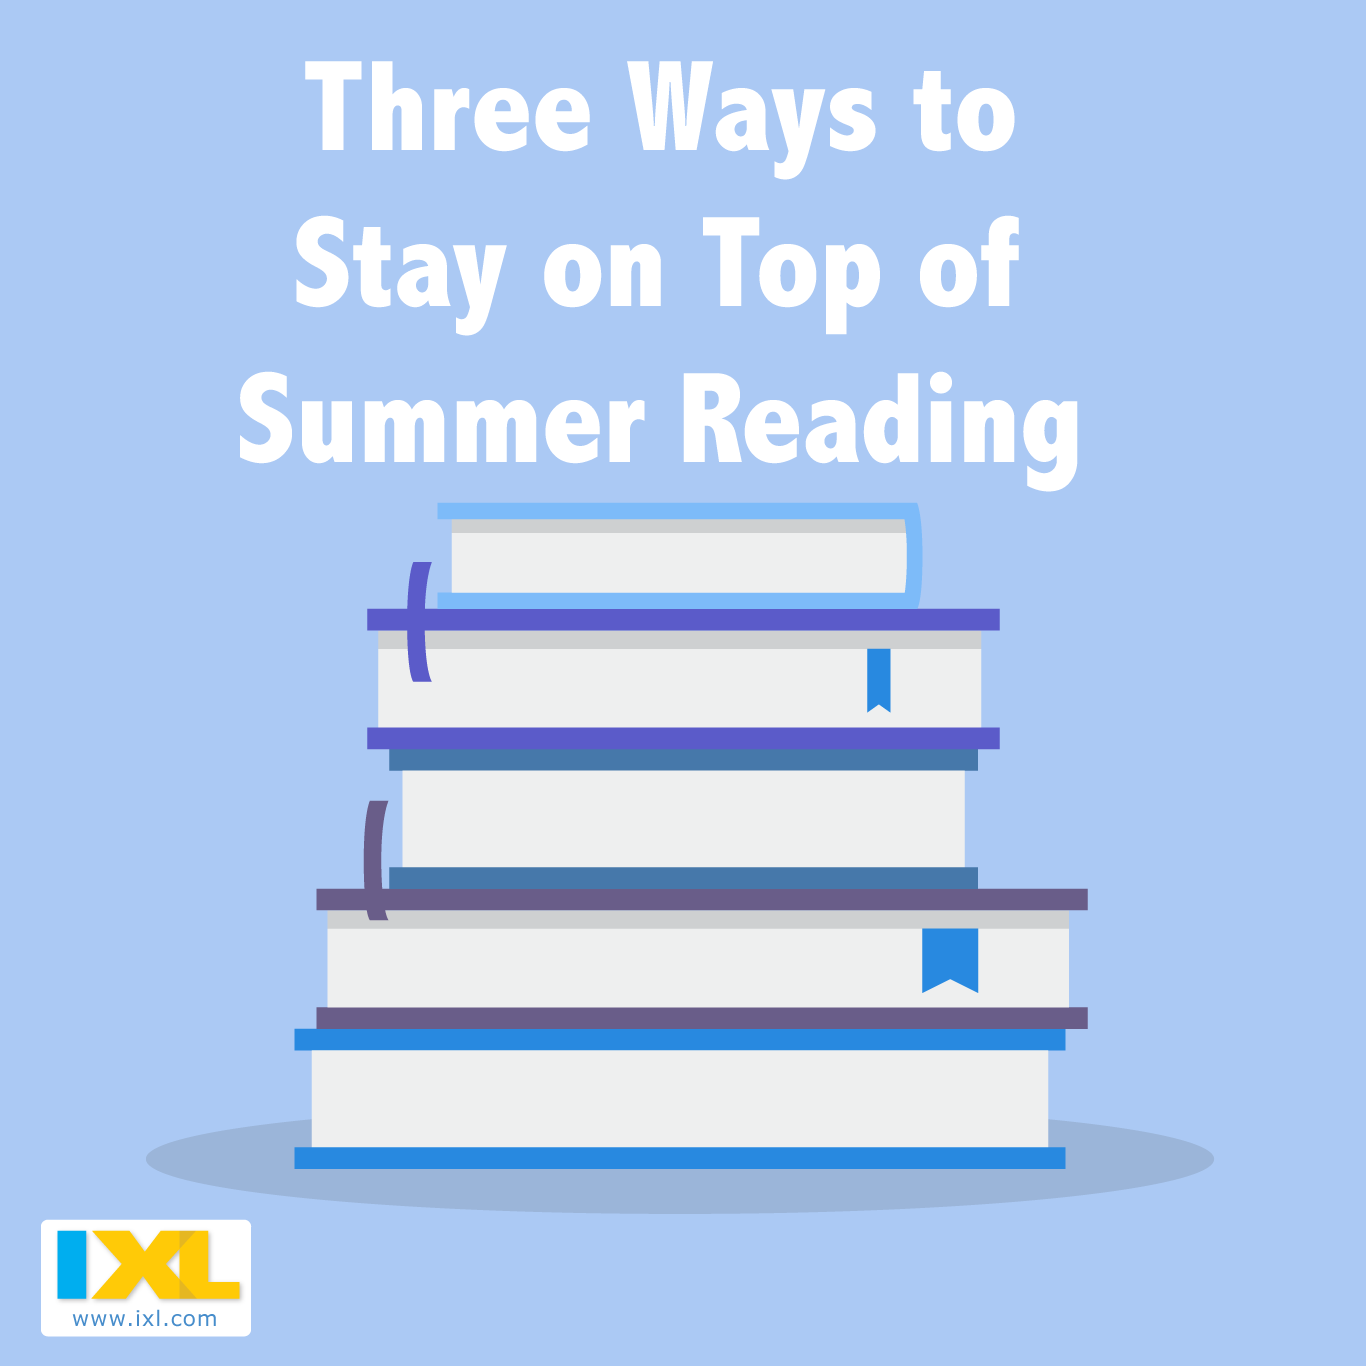 Three Ways to Stay on Top of Summer Reading